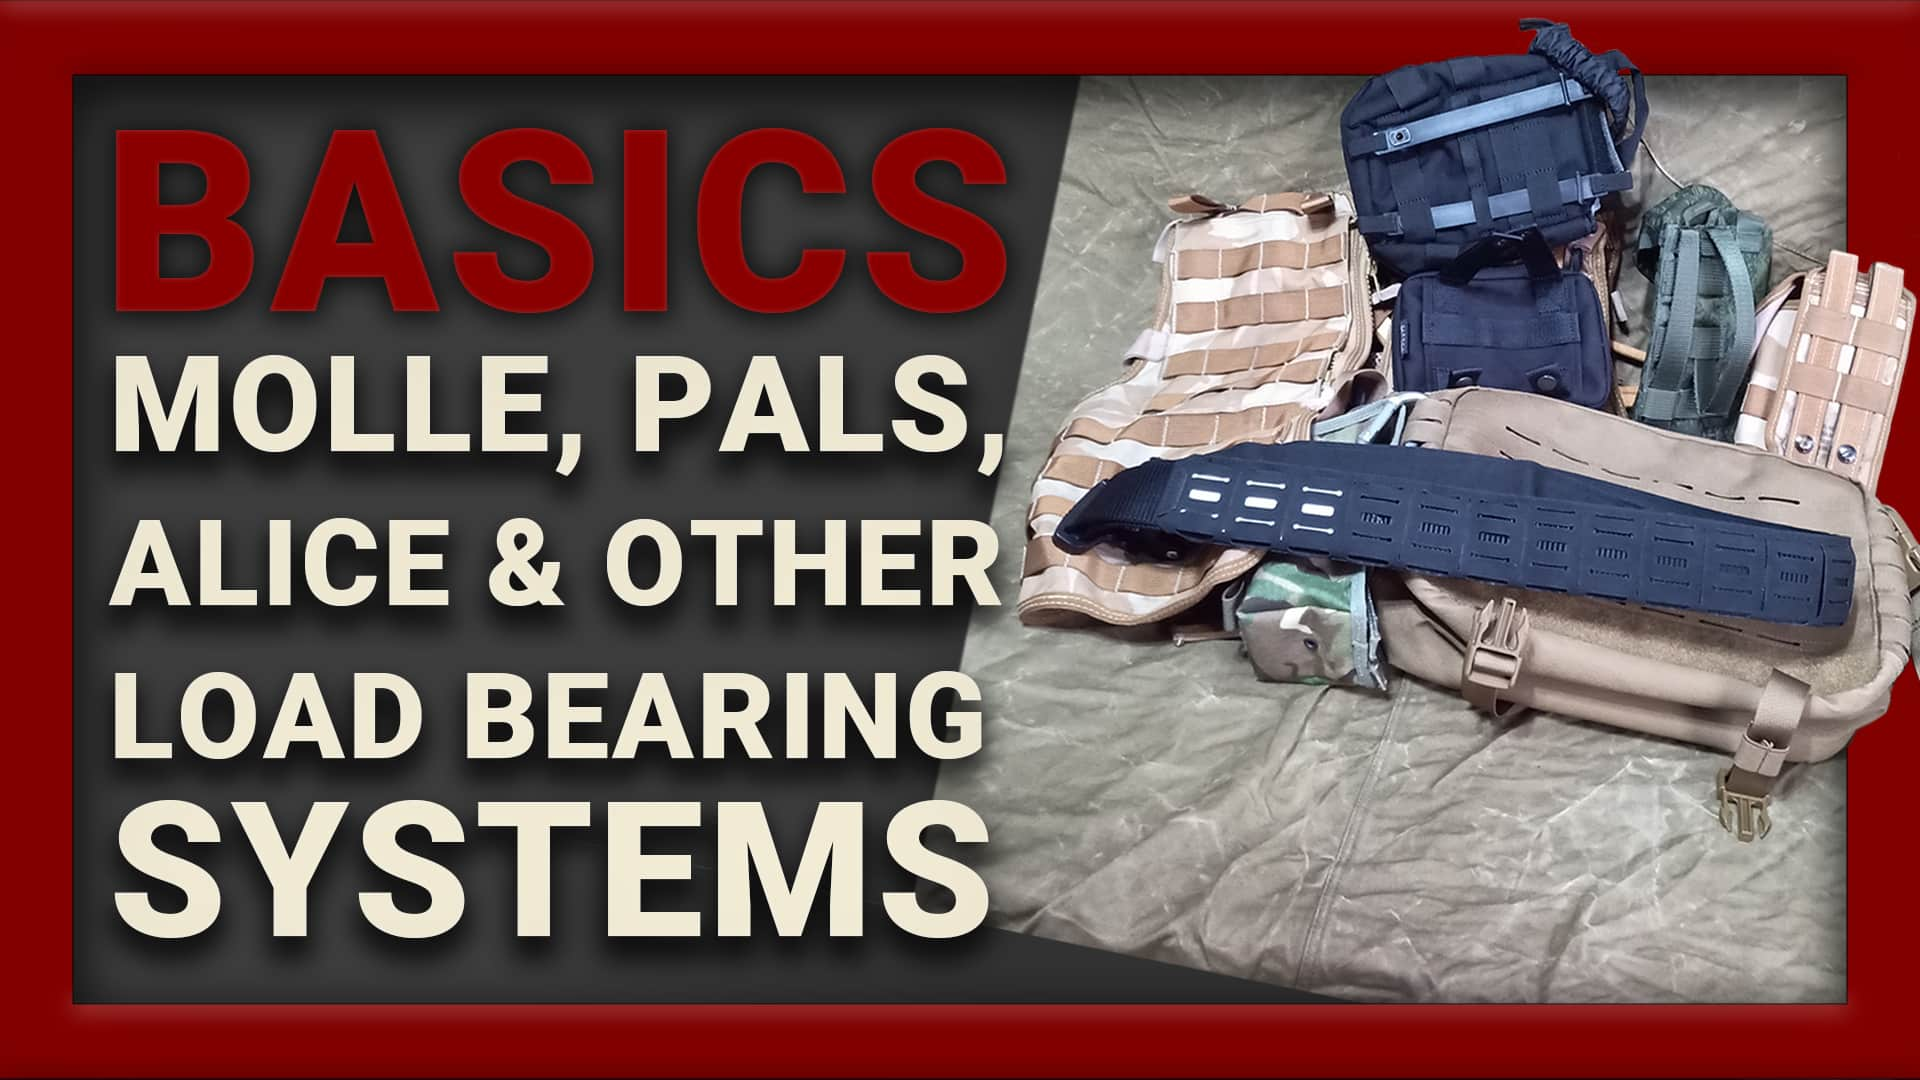 BASICS-Molle-pals-alice-other-load-bearing-systems-militariageneral-in-english